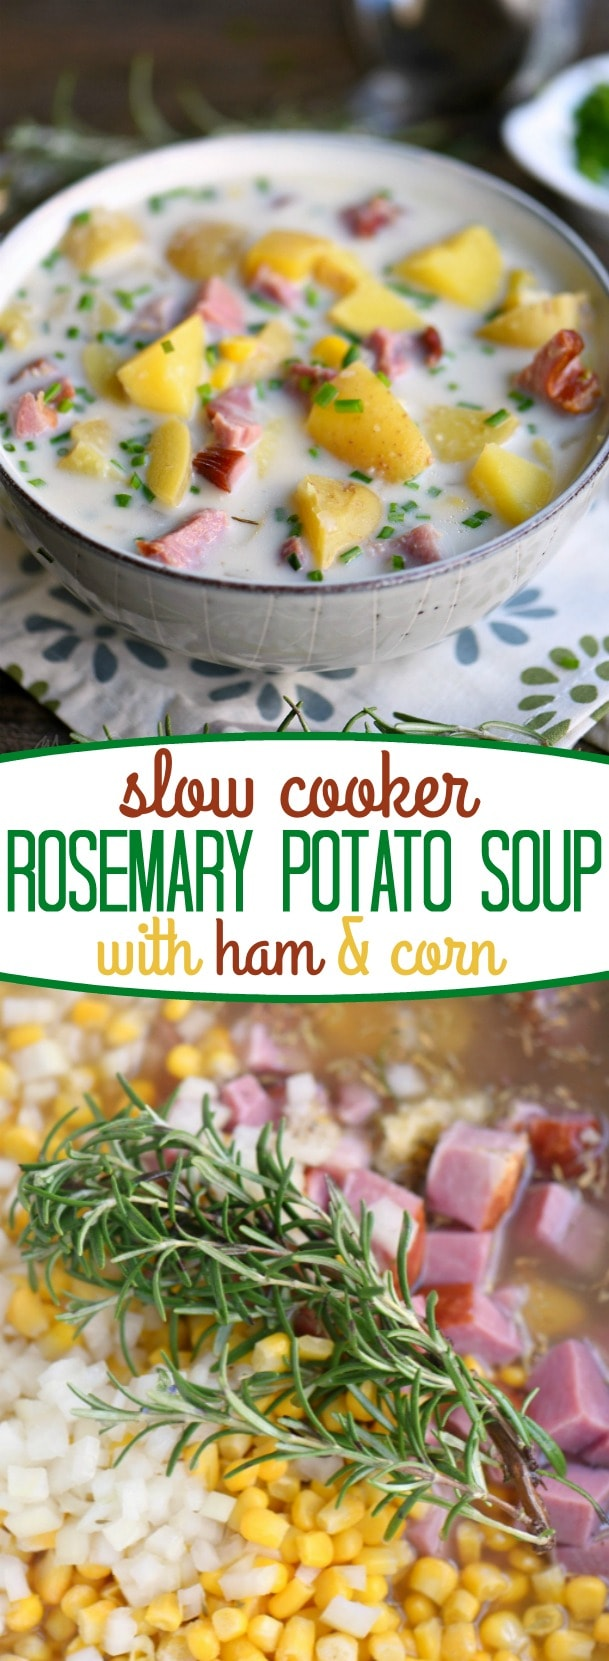 Love slow cooker recipes? This one is for you! This Slow Cooker Rosemary Potato Soup with Ham and Corn is all about filling your belly with goodness and warmth! Weeknight dinners have never tasted this good! // Mom On Timeout